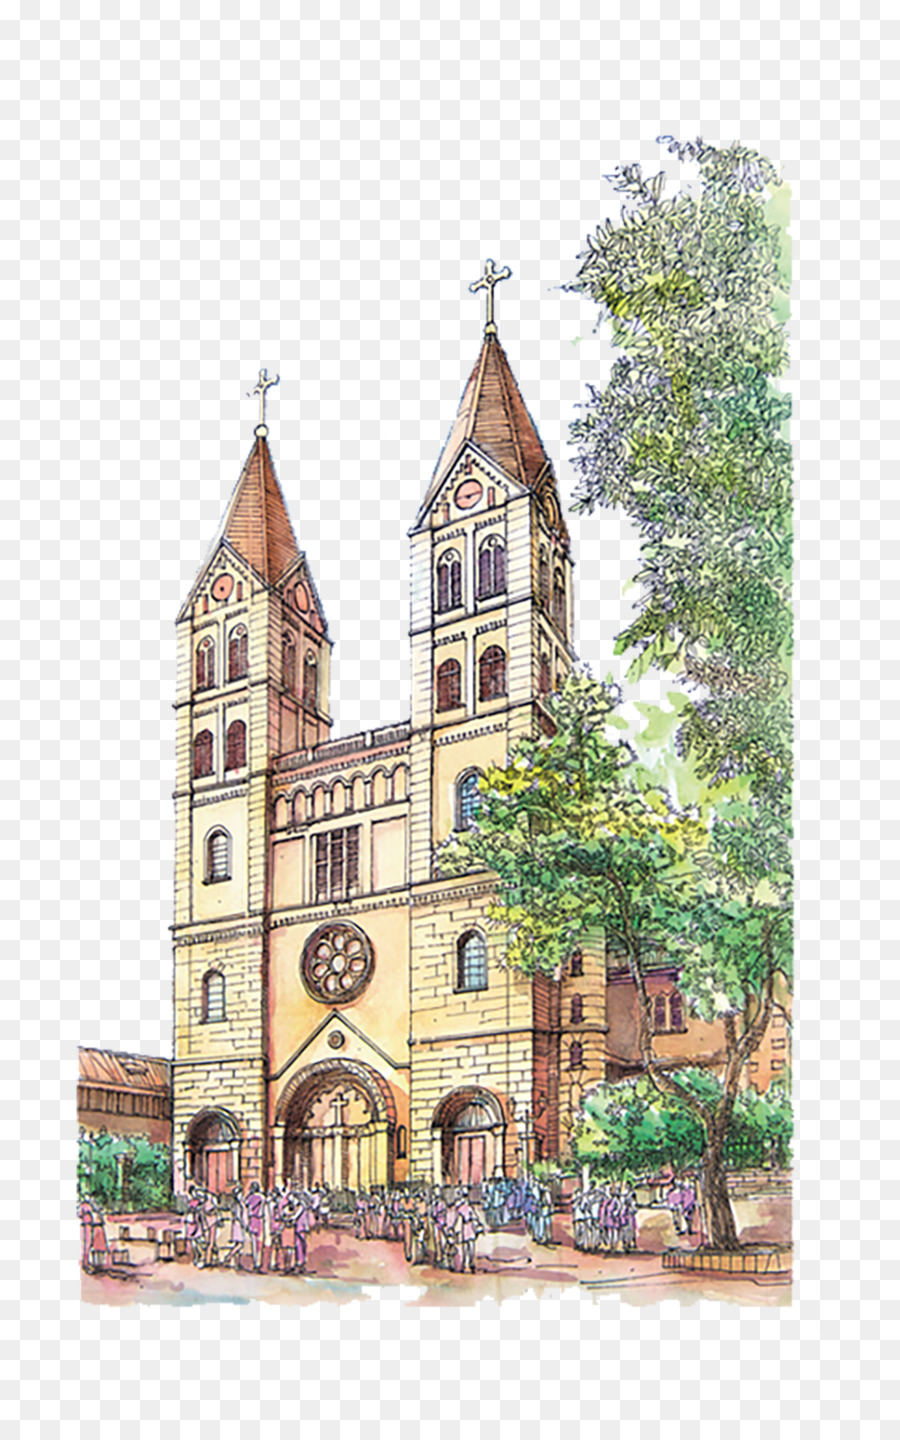 900x1440 Europe Watercolor Painting Architecture